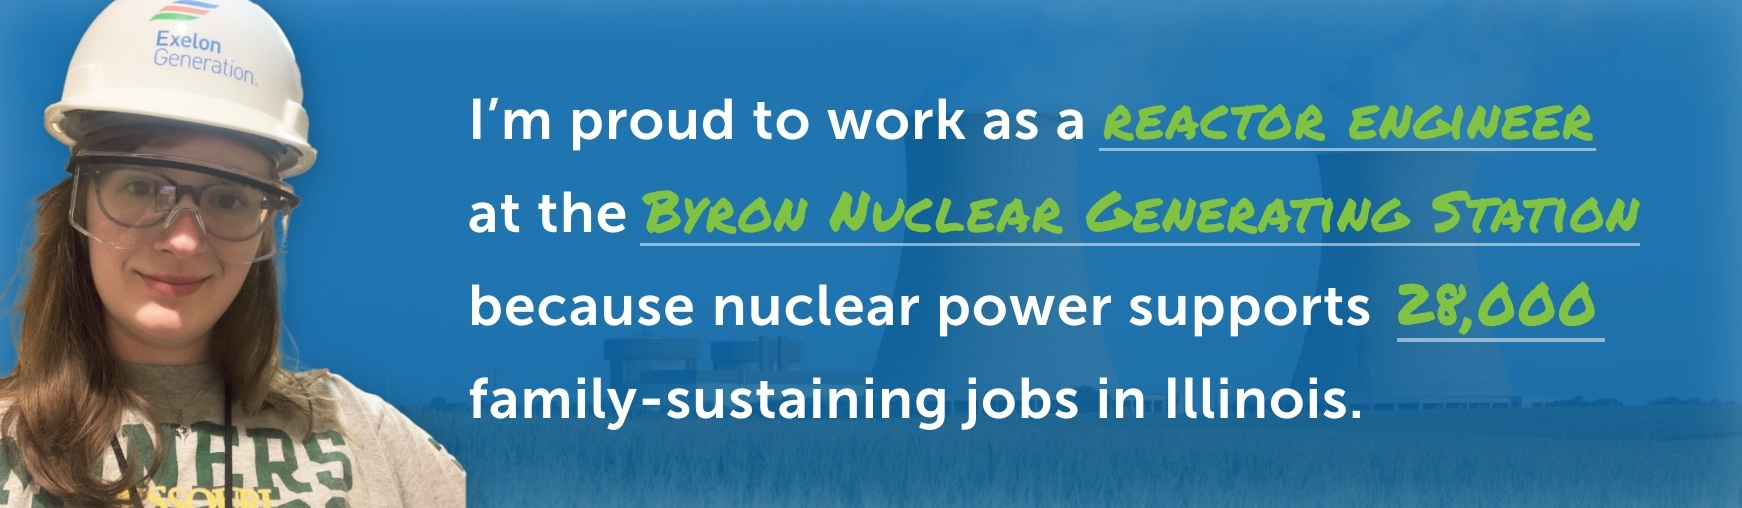 I'm proud to work as a reactor engineer